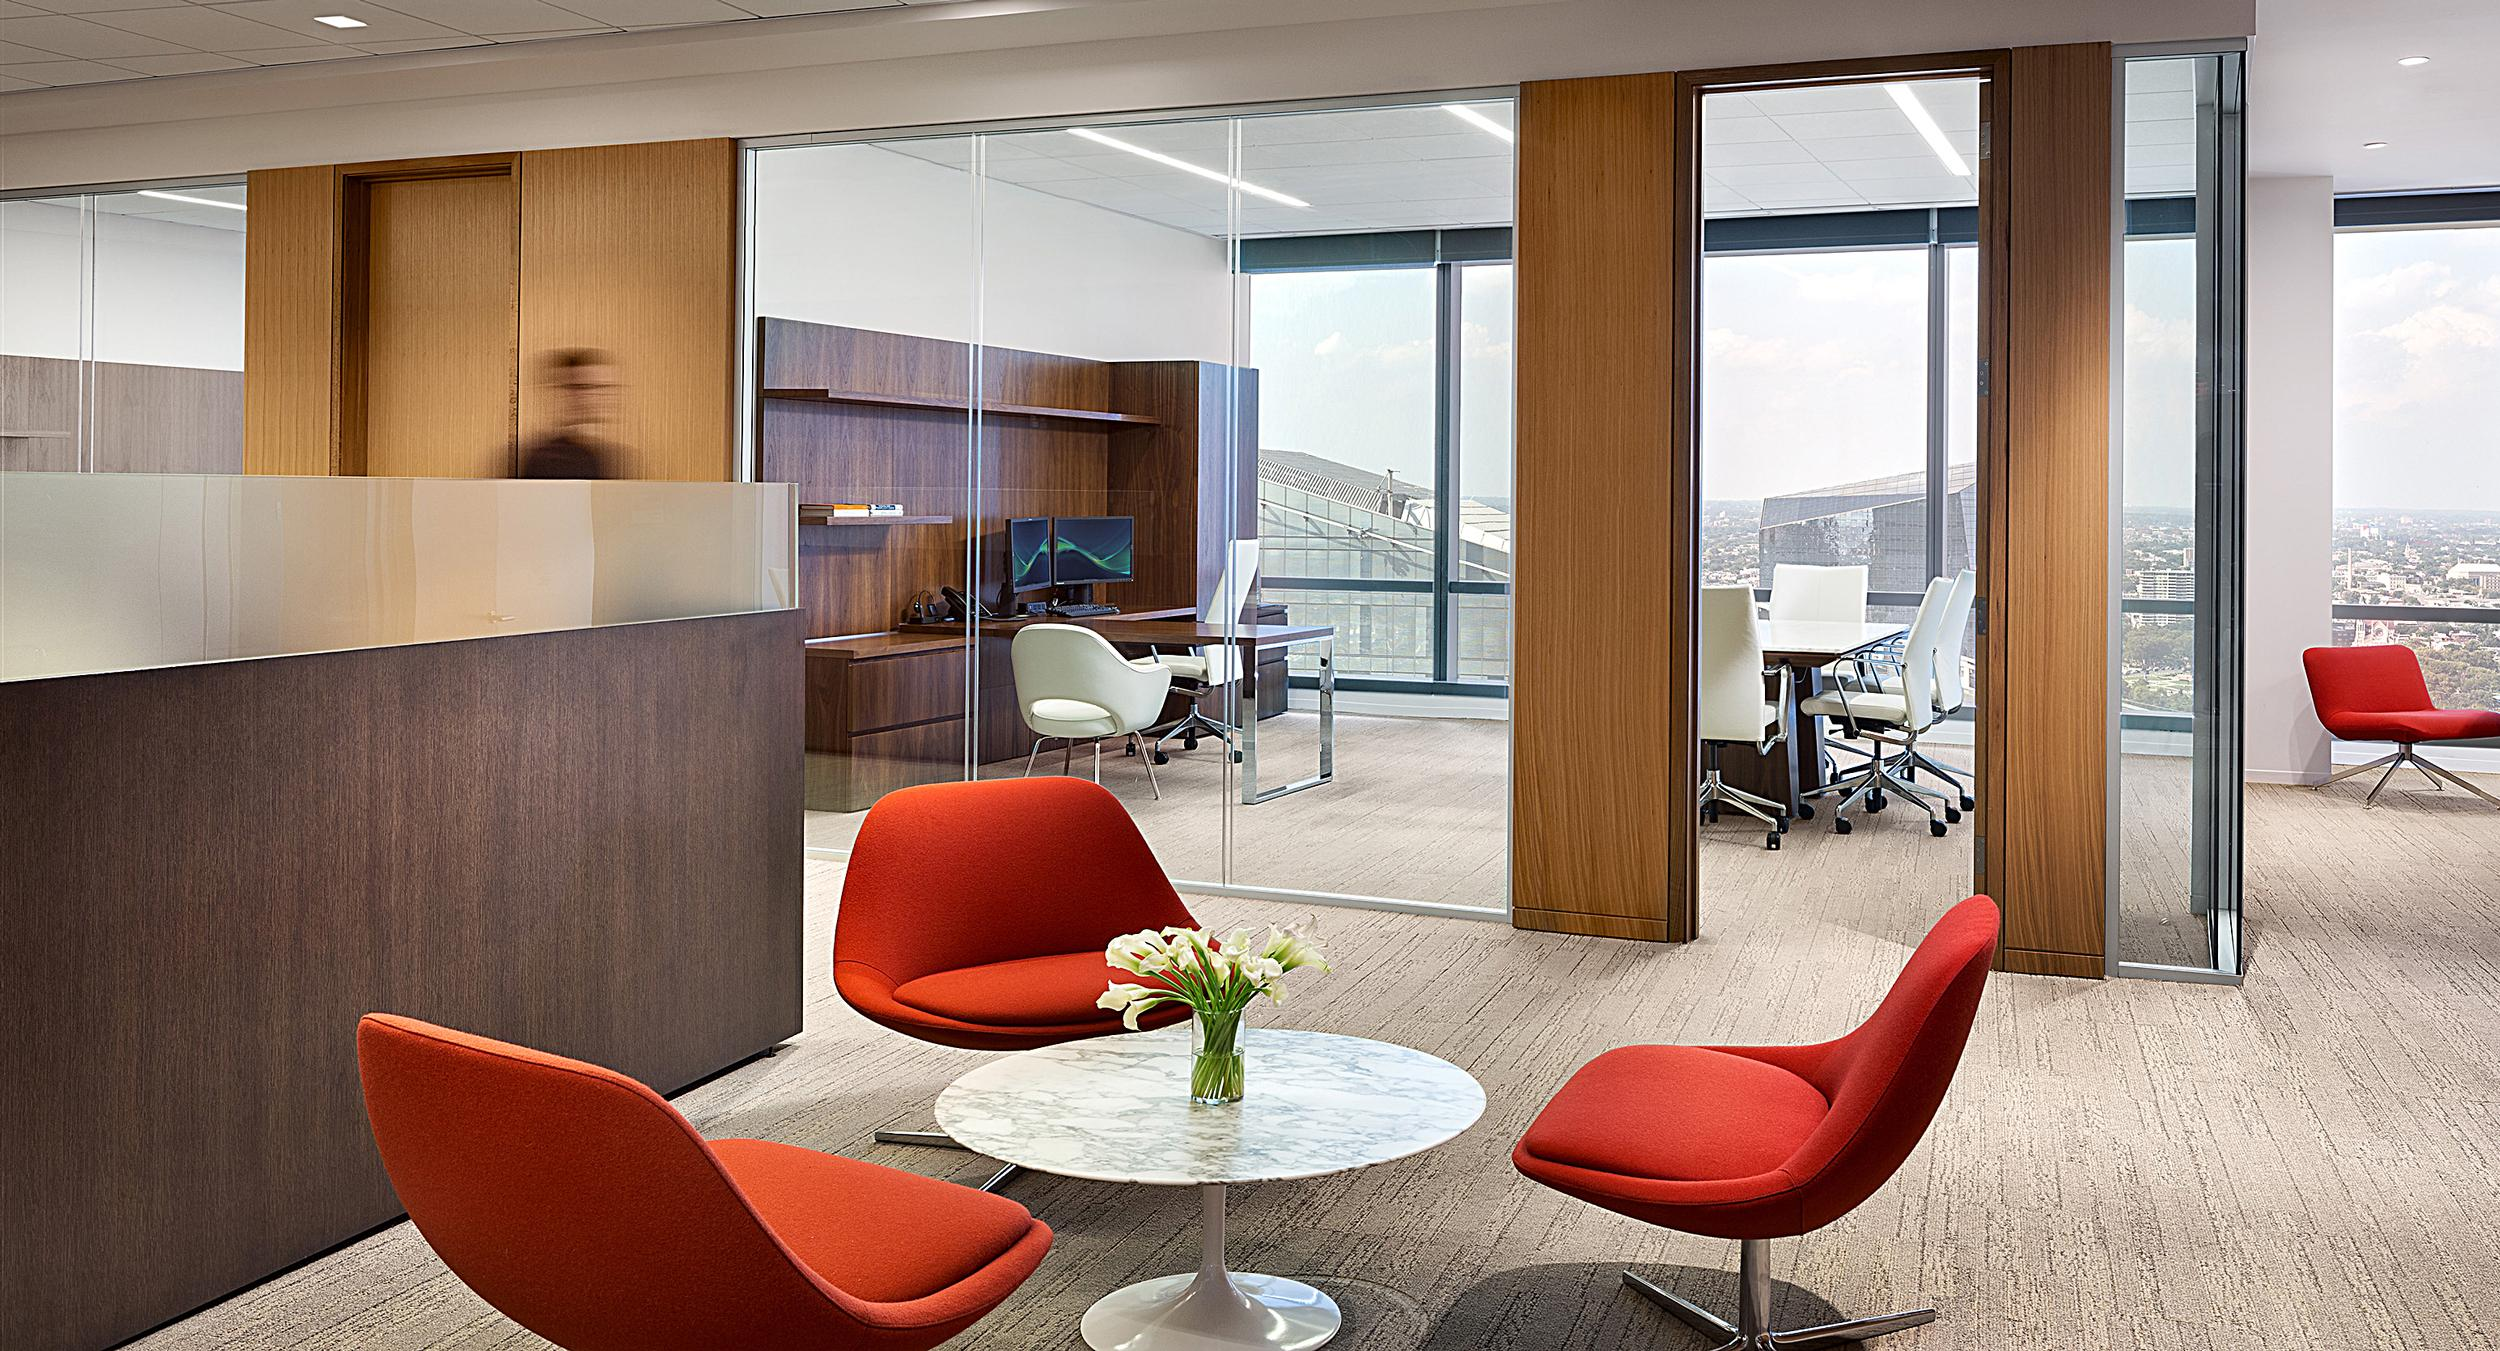 New Millennia was selected for open and private office solutions, complemented by Mesa meeting tables.